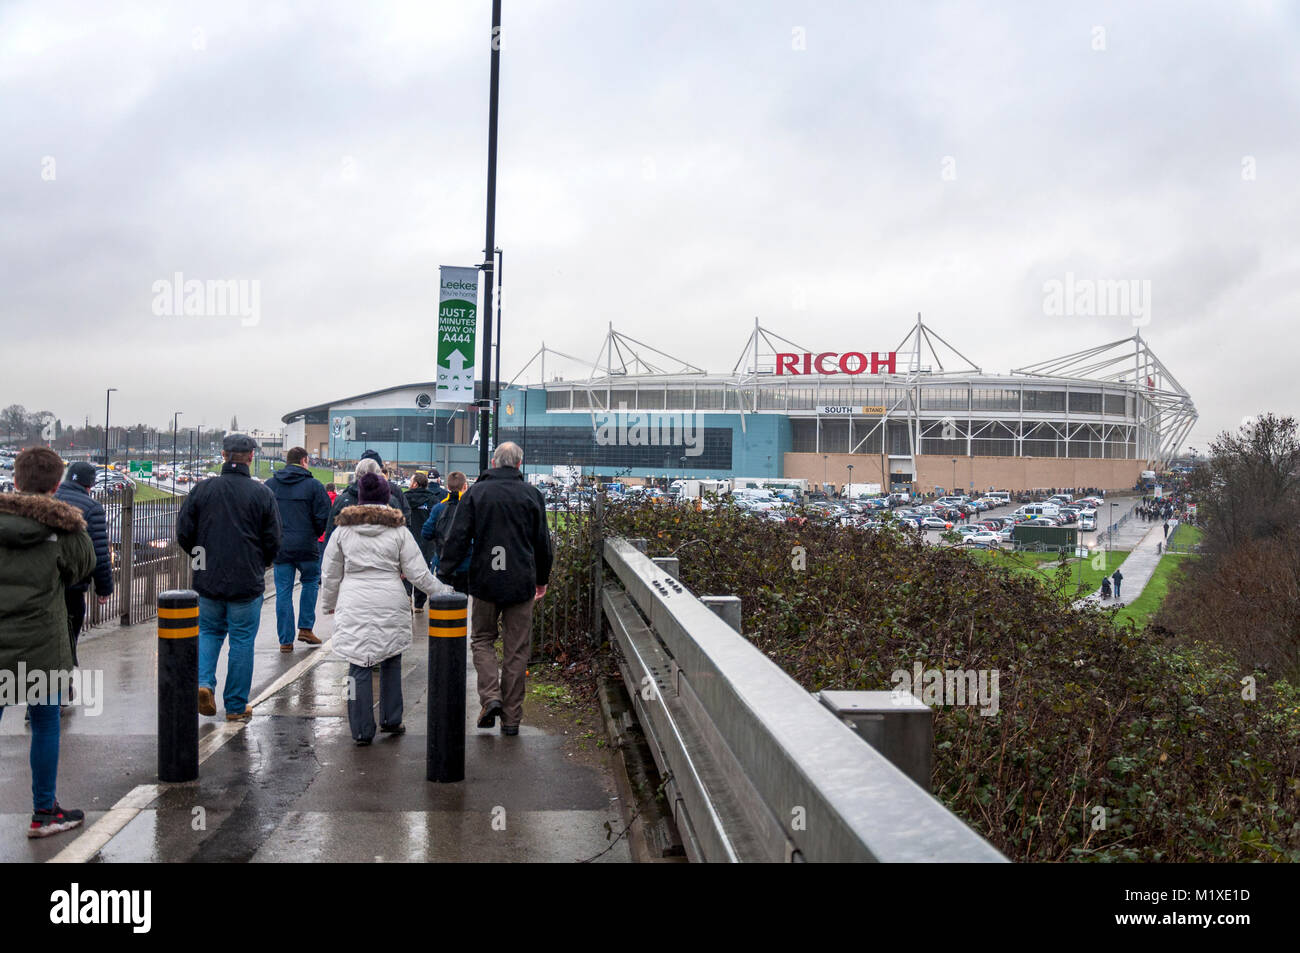 Rugby union supporters walk towards Ricoh Stadium, Coventry, UK home of Wasps professional rugby team - Stock Image